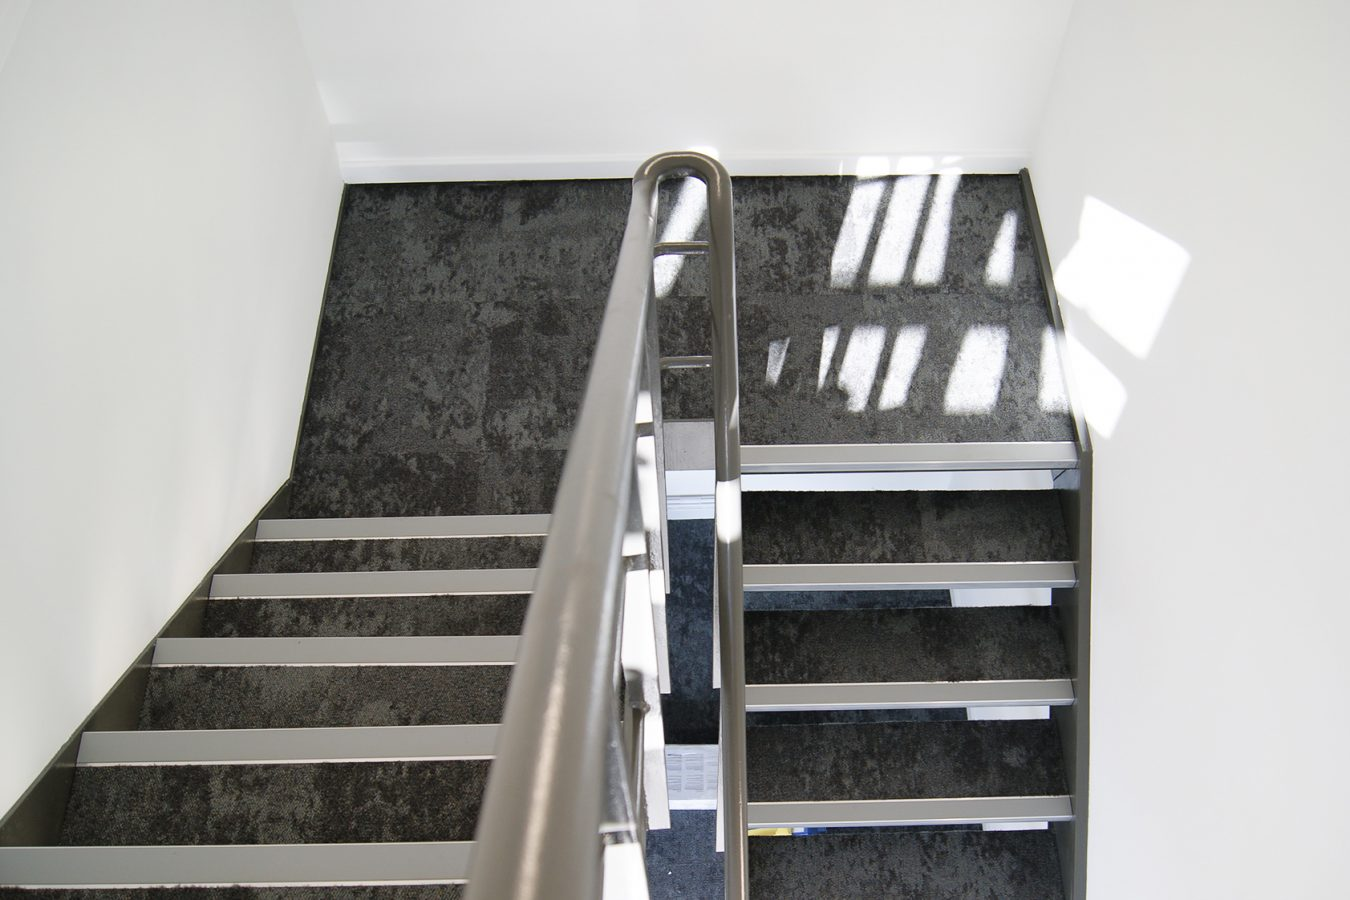 Reconditionated stairs with grey new carpet tiles in a warehouse workspace.